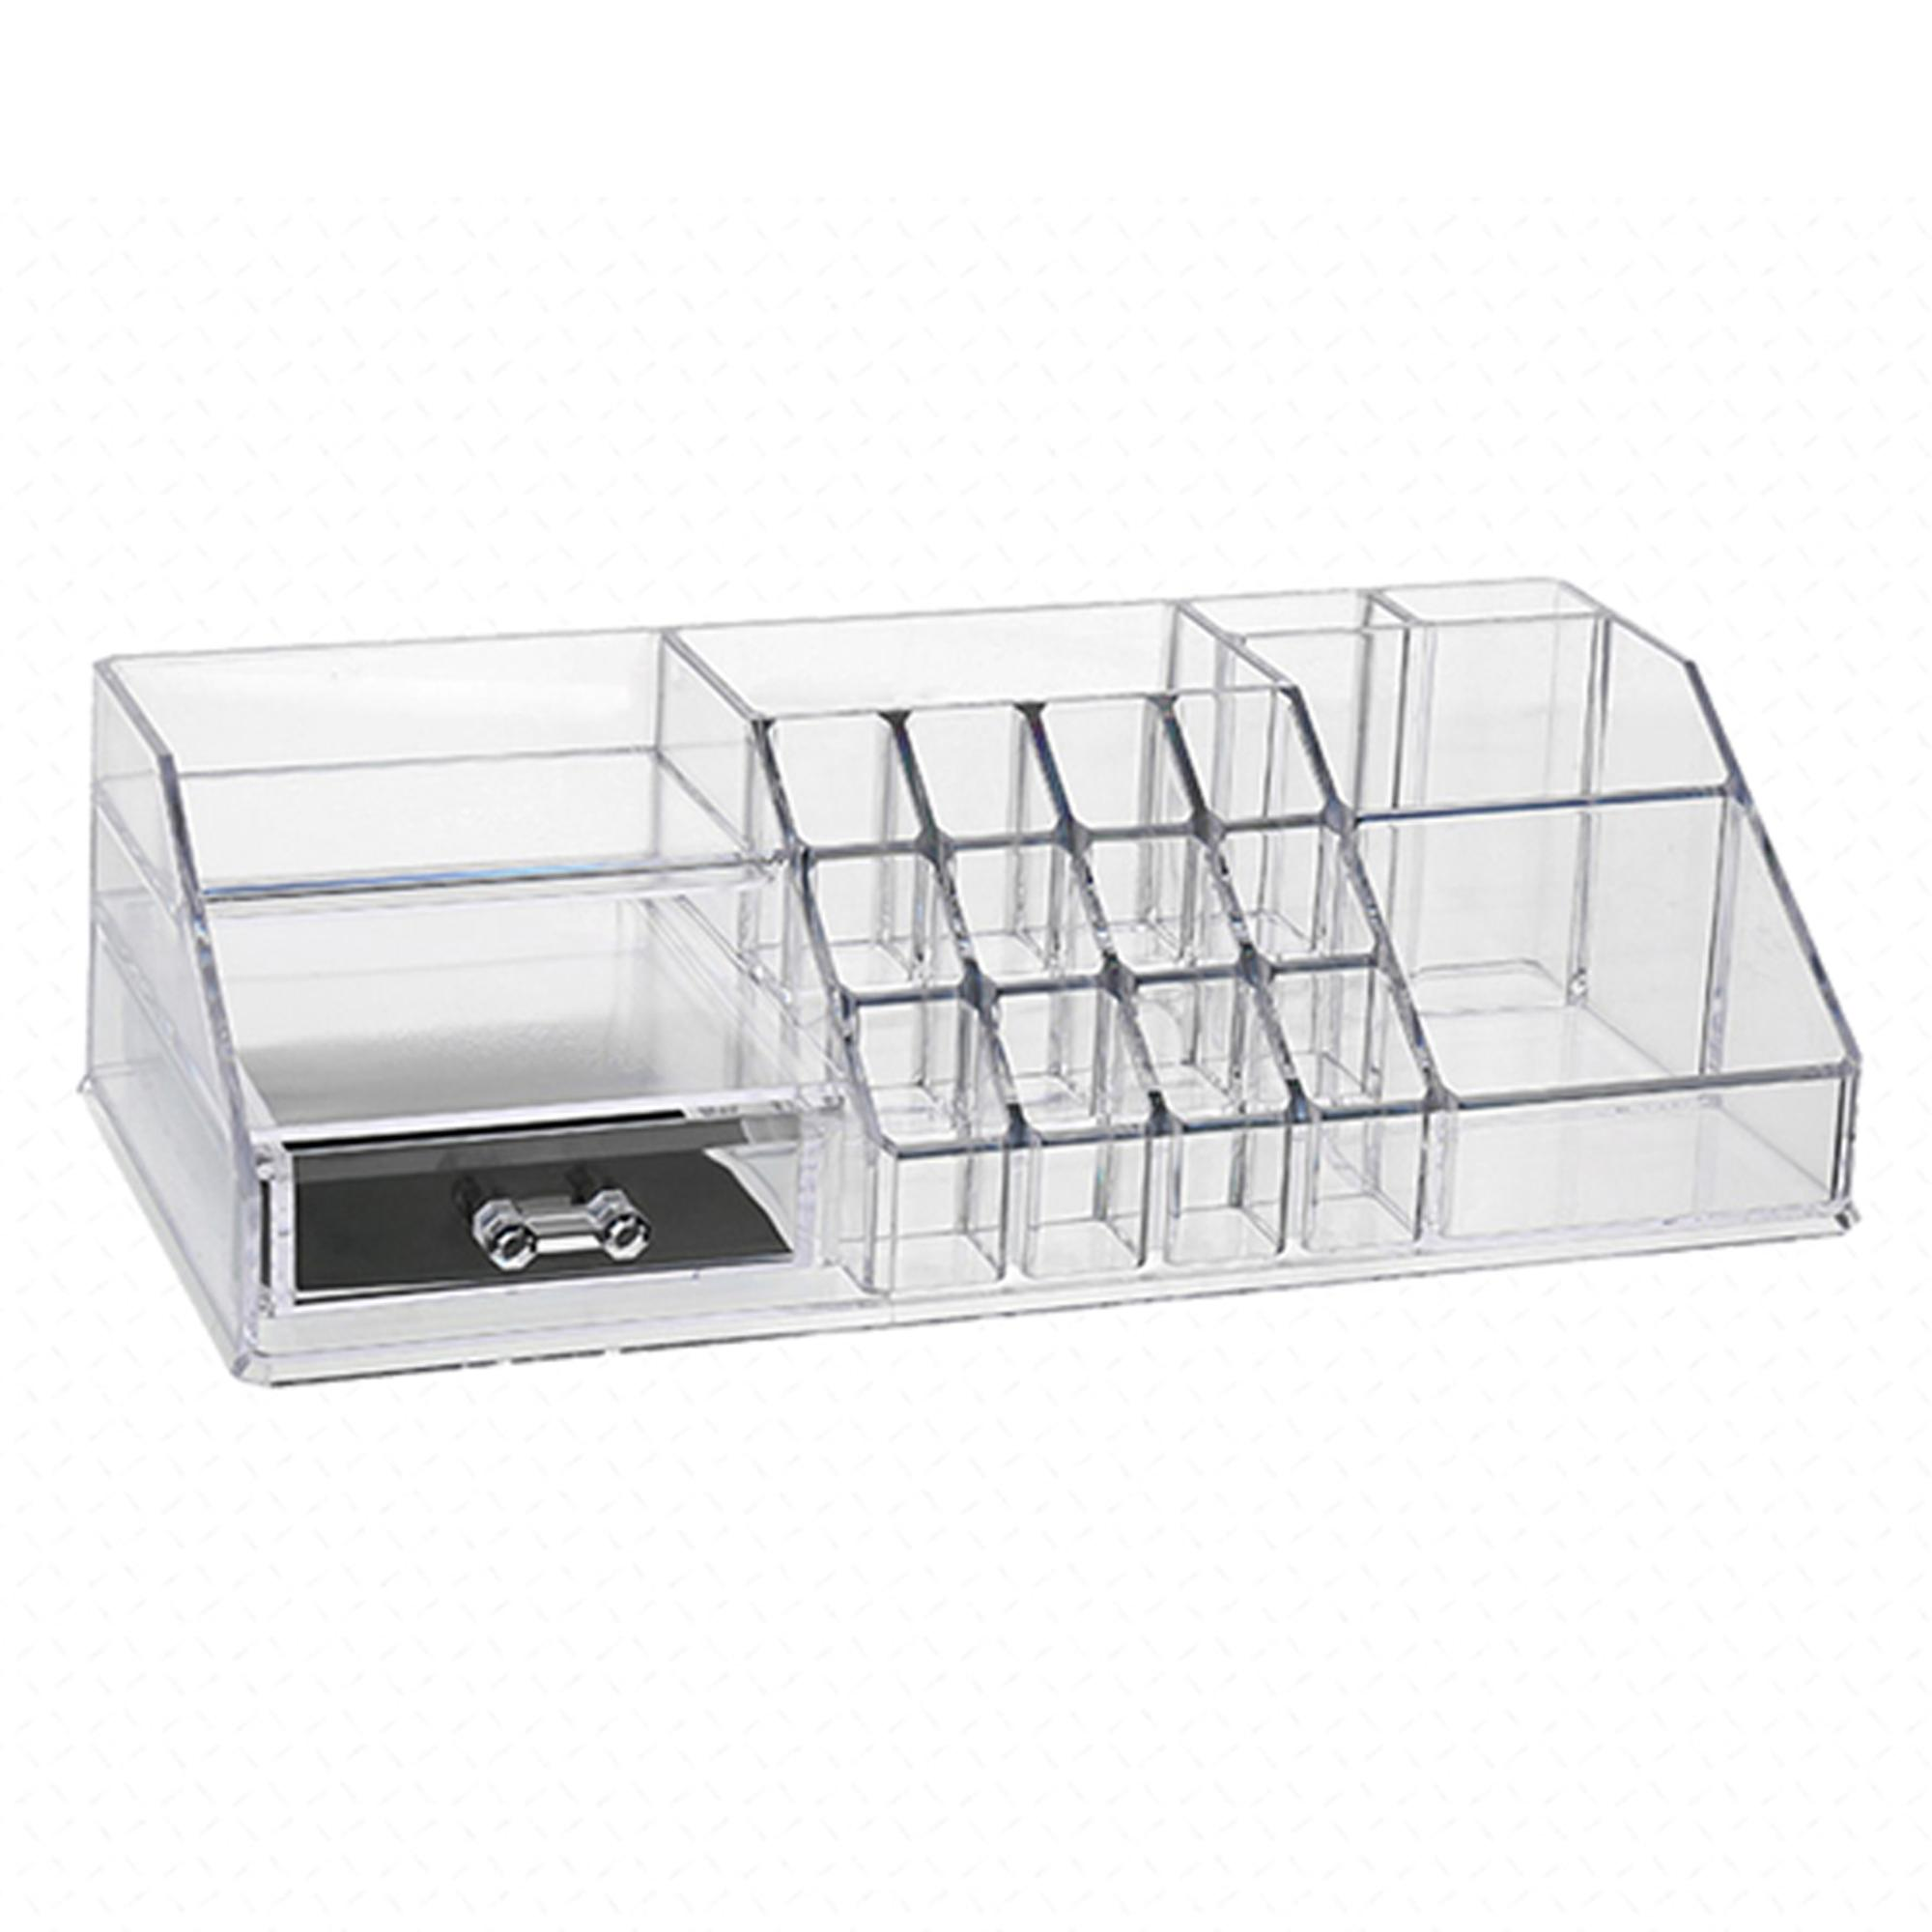 High standard quality makeup storage box